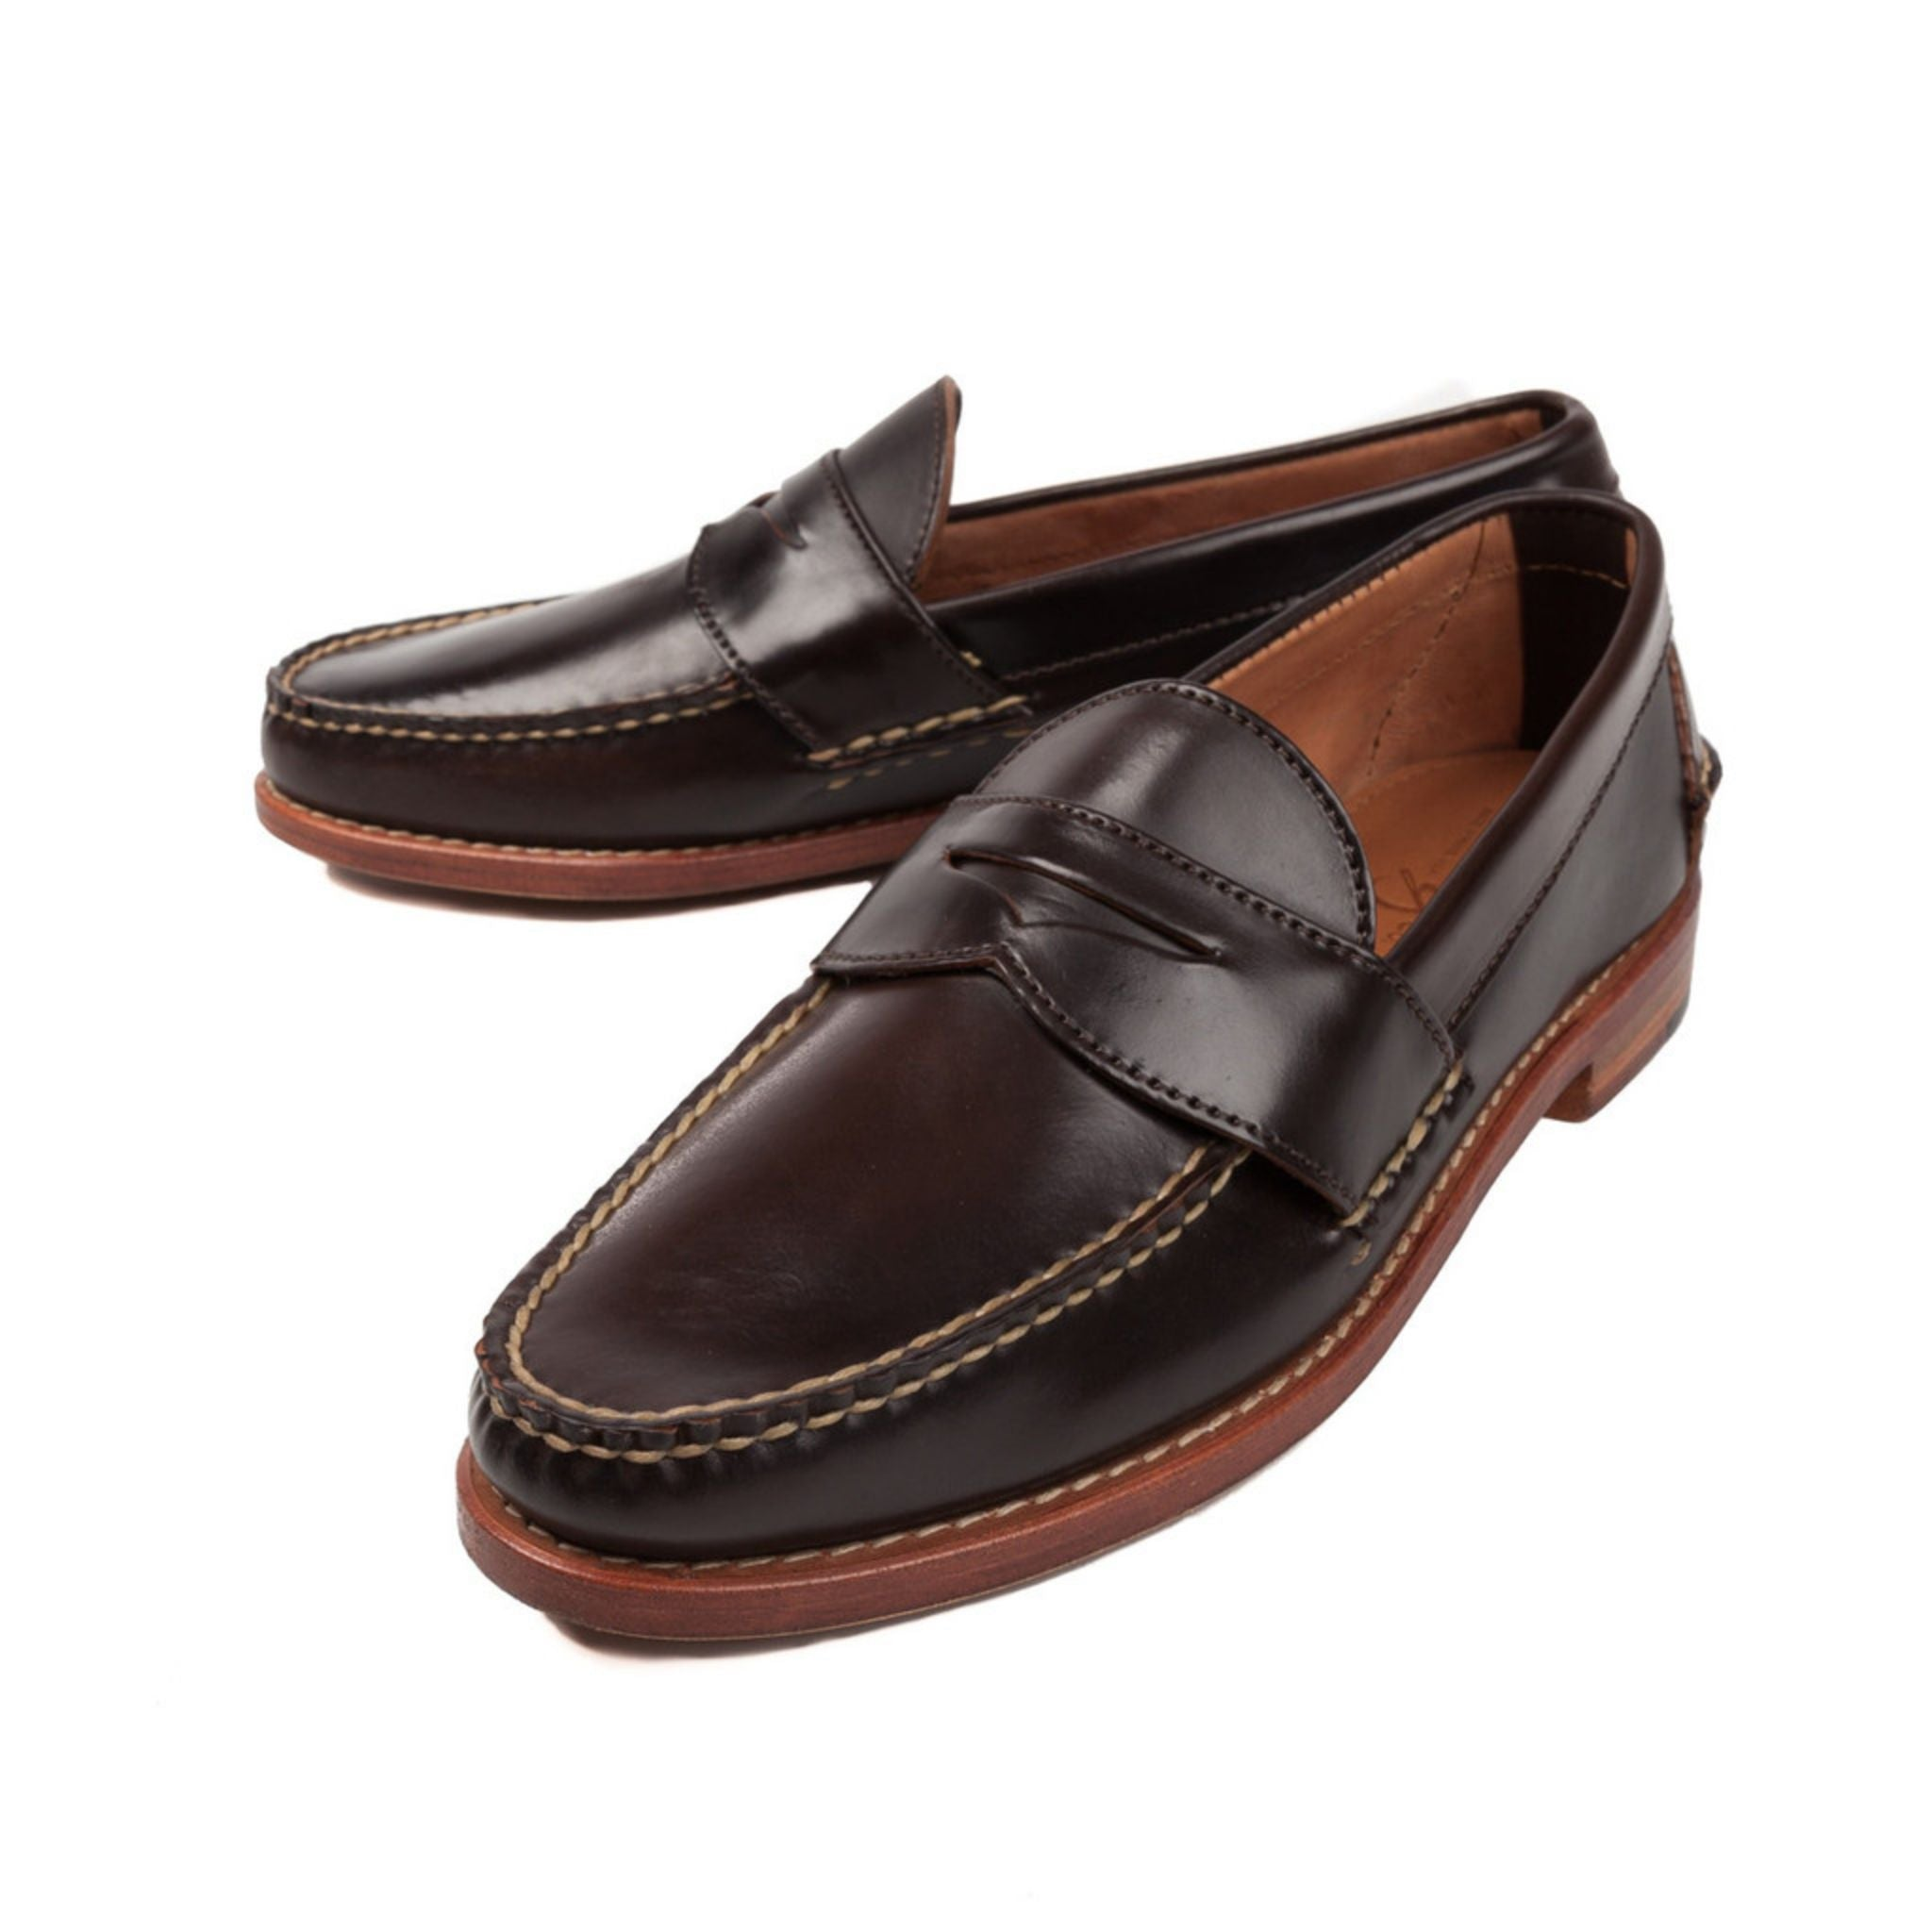 5x Penny loafers - Rancourt cordovan leather